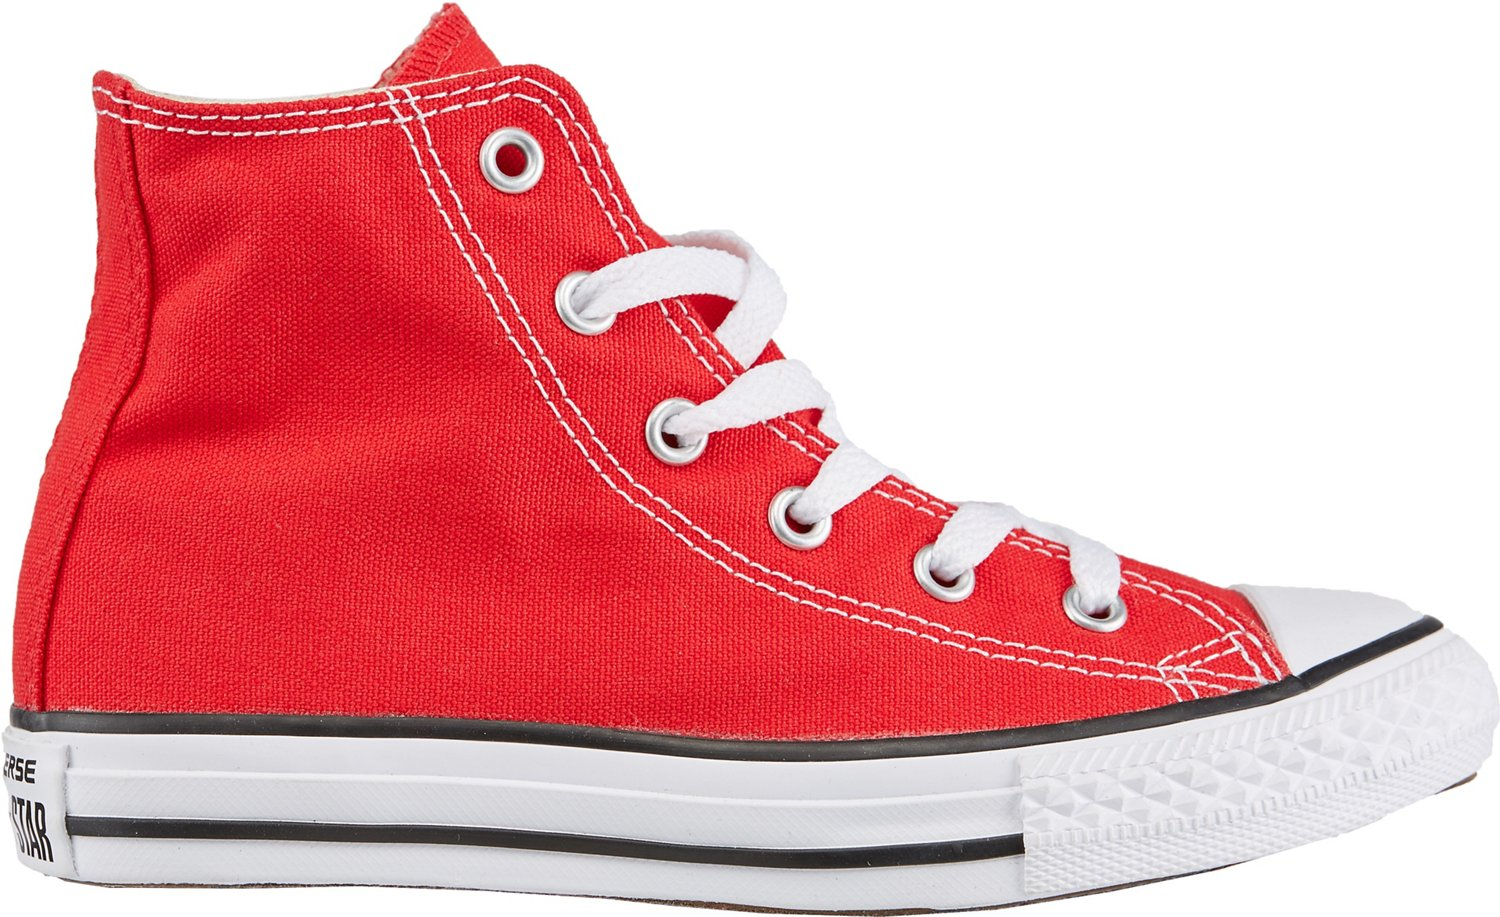 92c069d40d2e Display product reviews for Converse Boys  Chuck Taylor All Star Shoes